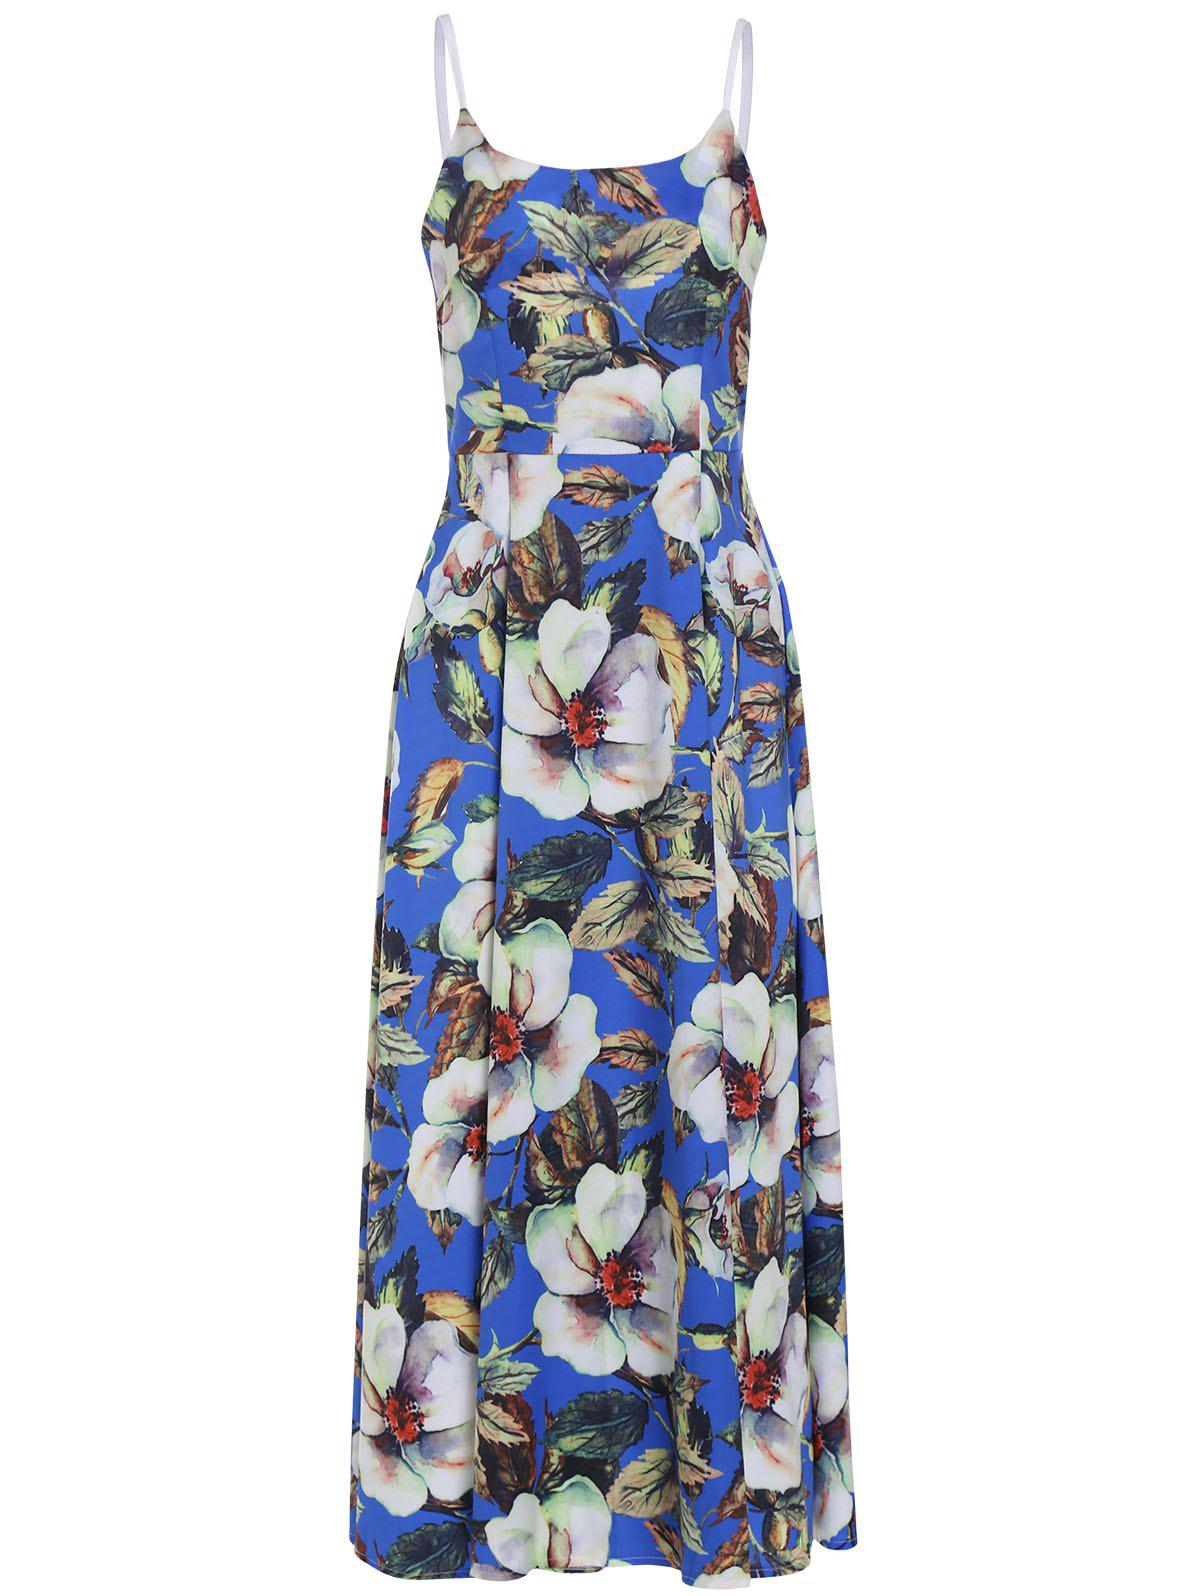 Sweet Spaghetti Strap Floral Print Maxi Dress For Women - COLORMIX M